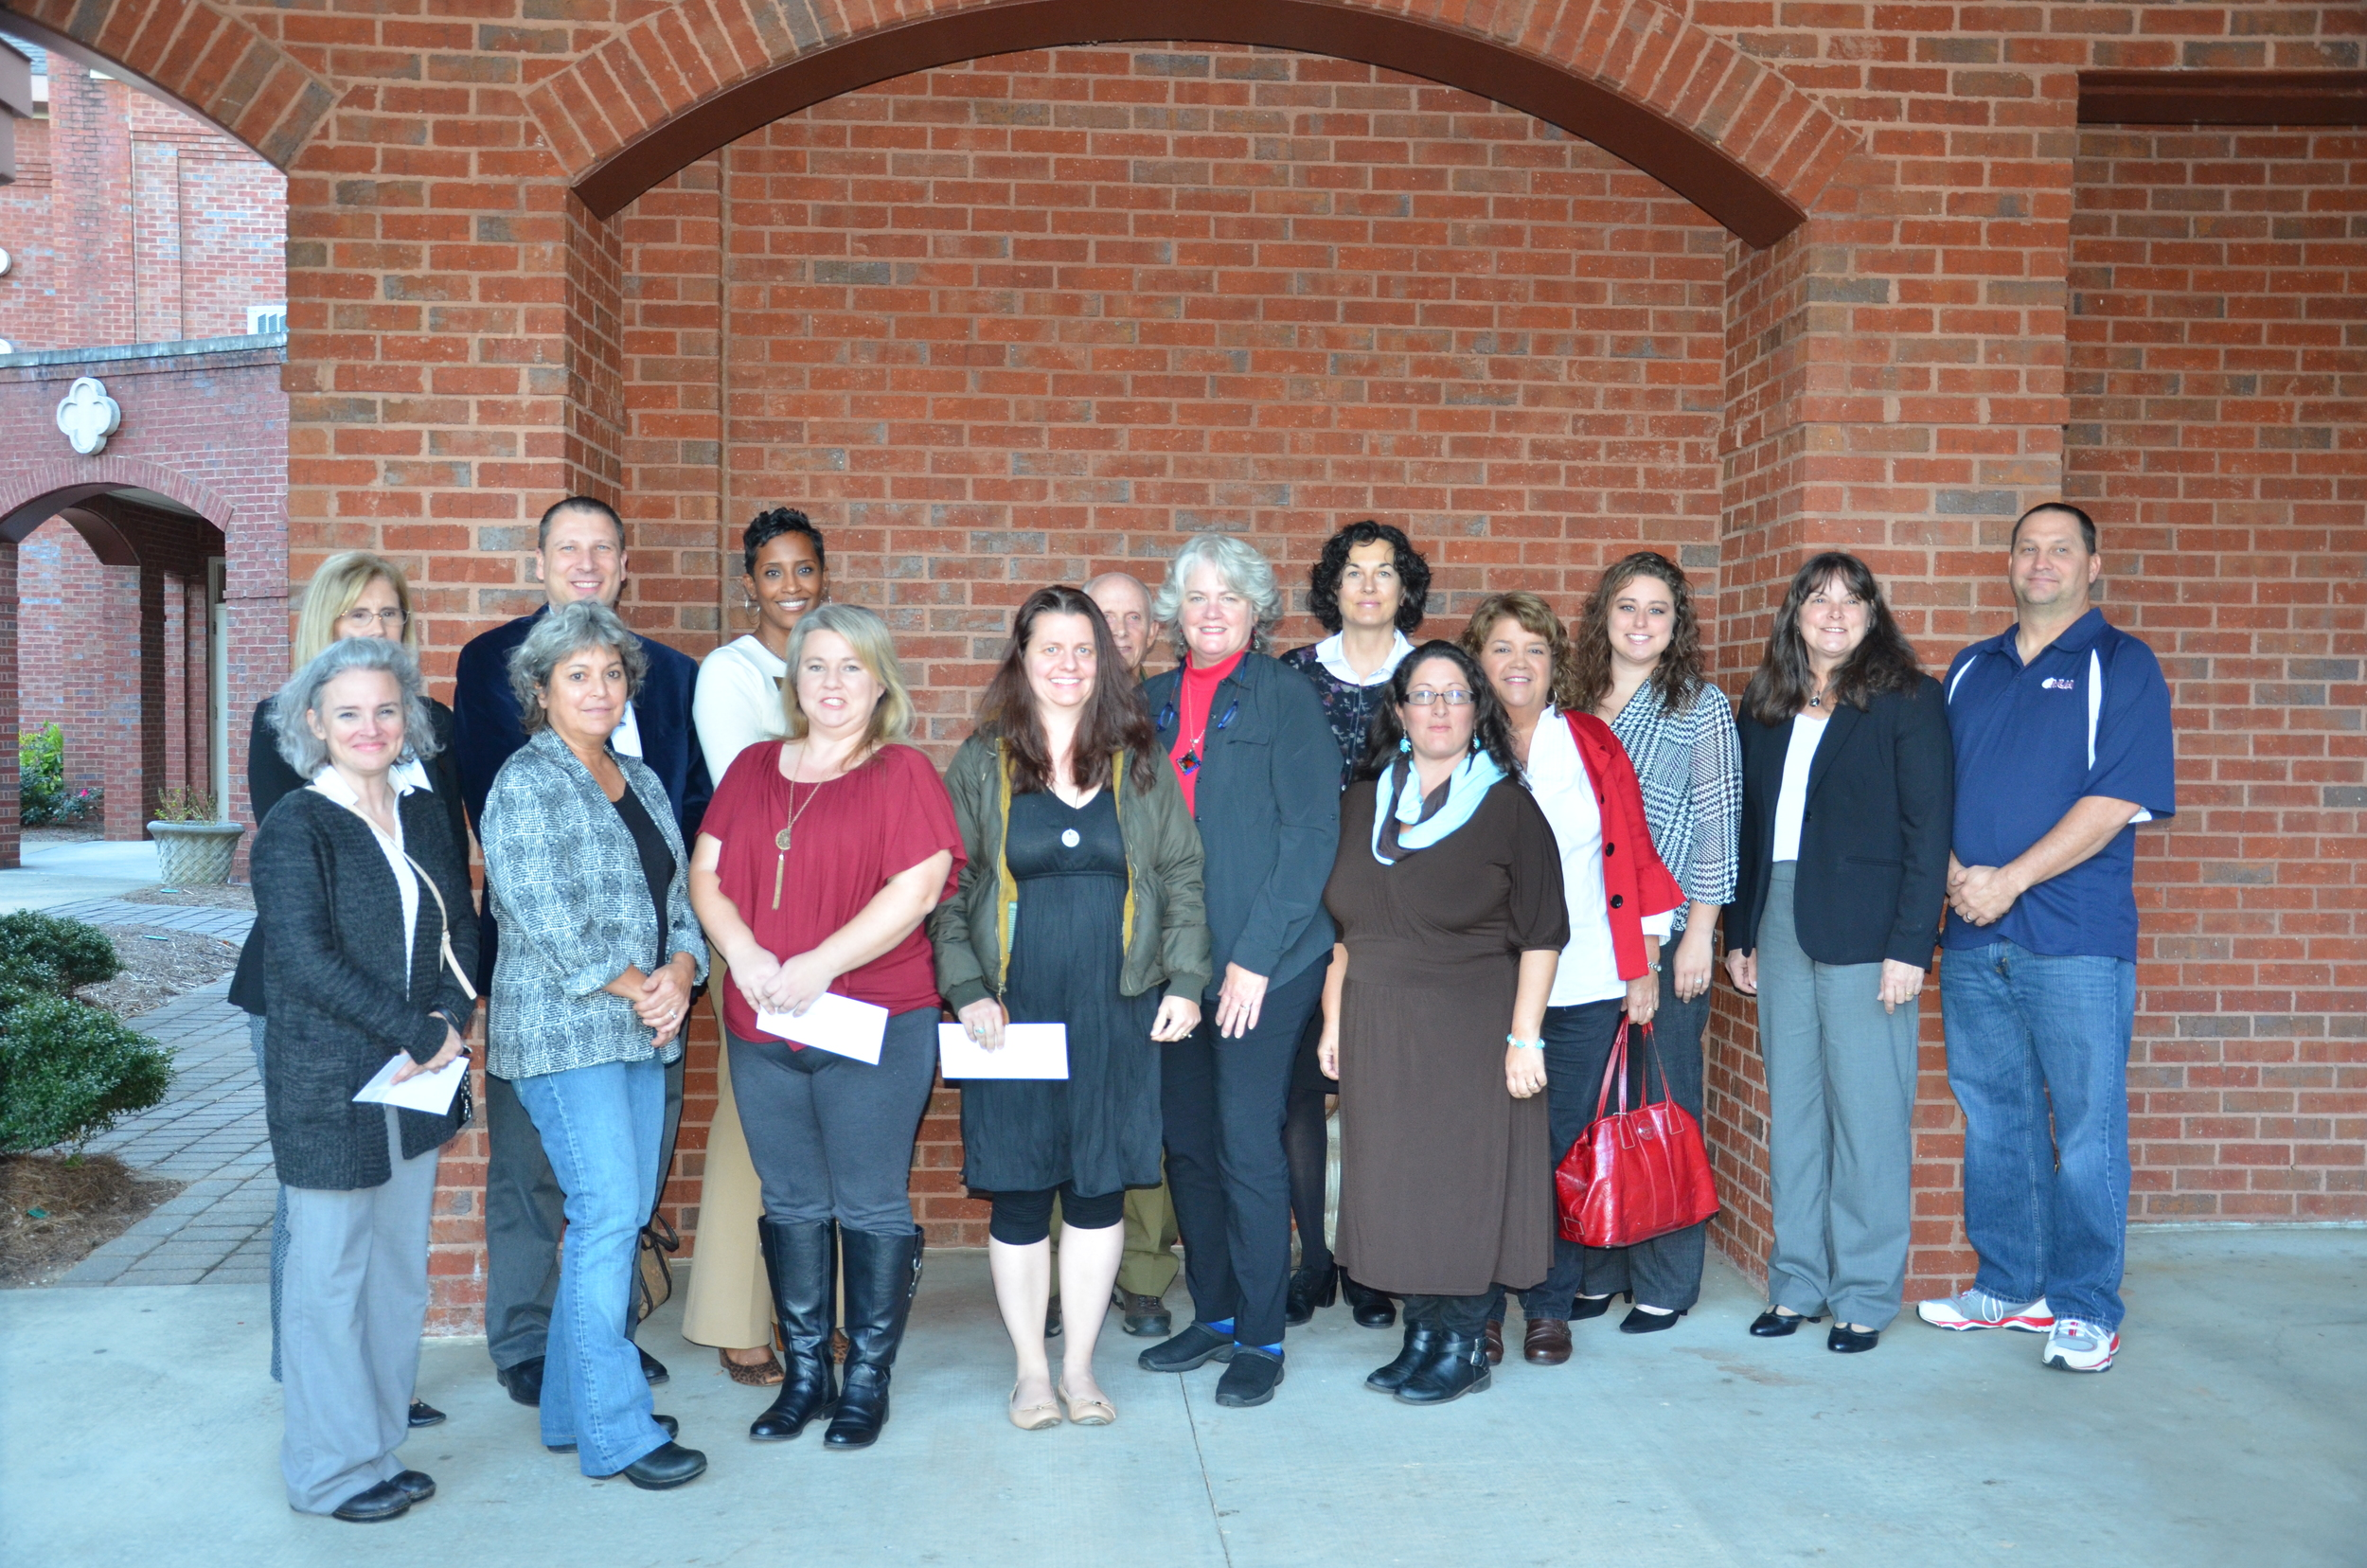 2015 Community Impact Grant Recipients representing    Boy Scout Troop 241, Cherokee County Farm Bureau, Cherokee County School District – Office of Educational Programs, Creekview High School, Hasty Elementary School, Heaven's Gait Therapeutic Riding, Living Bread Ministries, North Georgia Angel House, Inc.and Upper Etowah River Alliance.